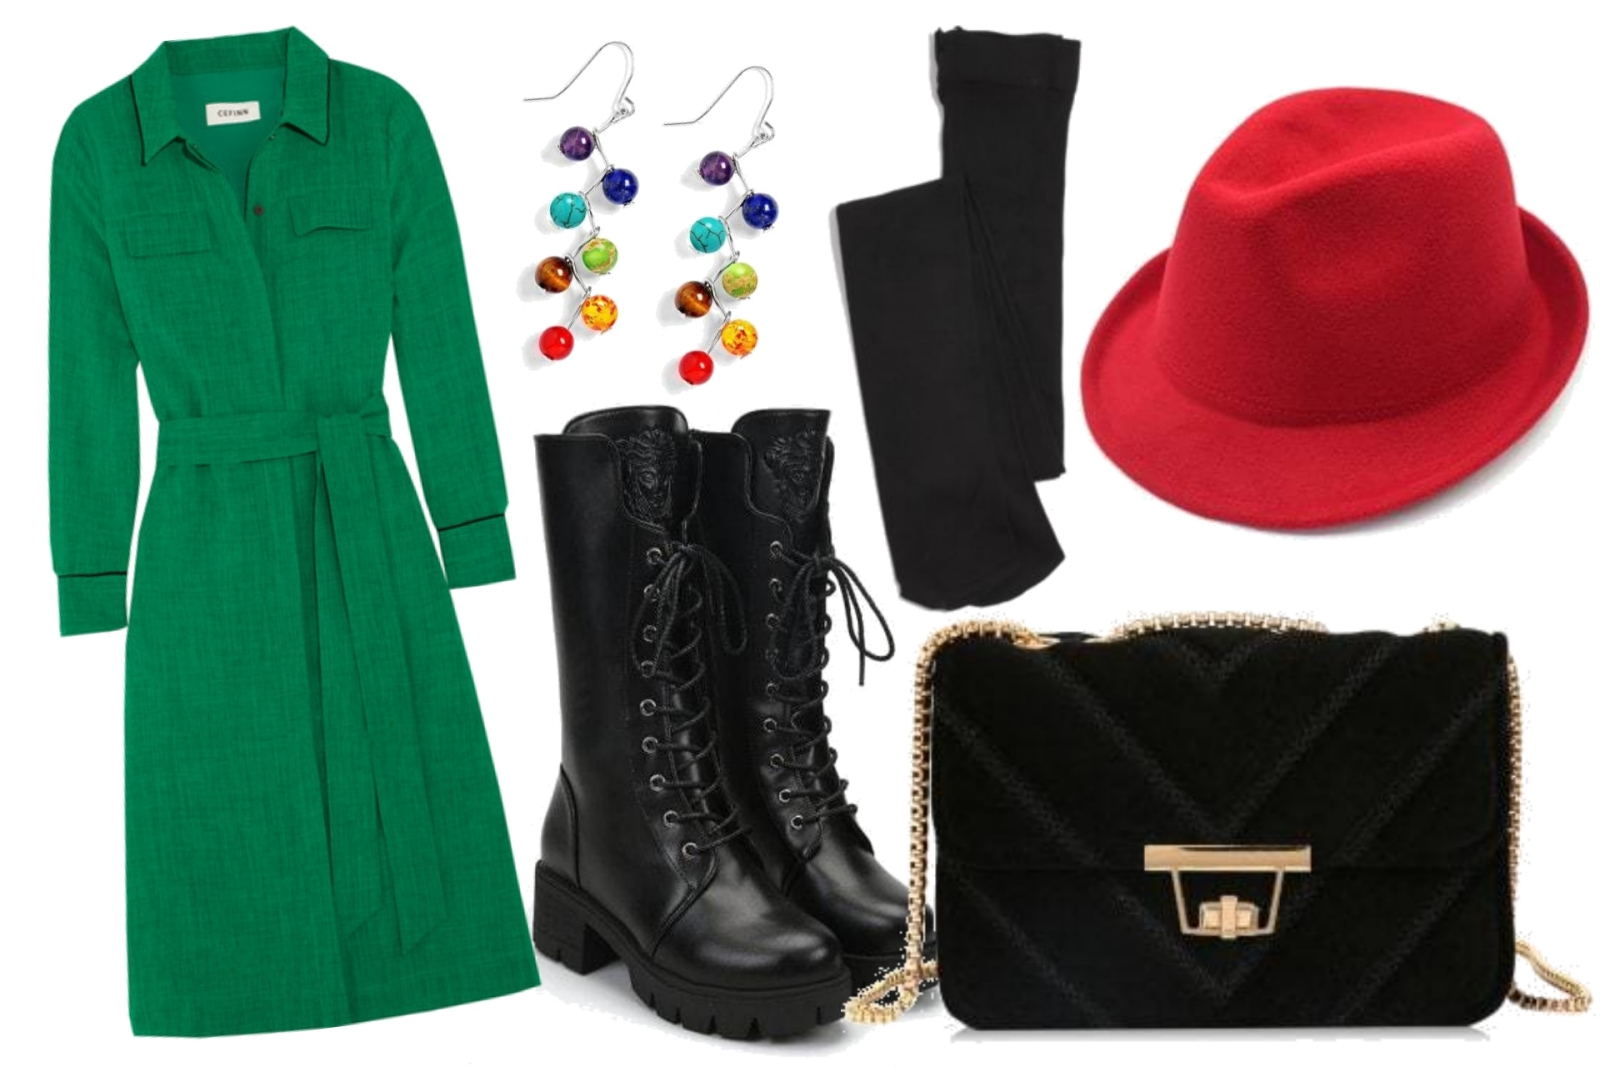 womenswear holiday outfit inspo & rosegal christmas sales